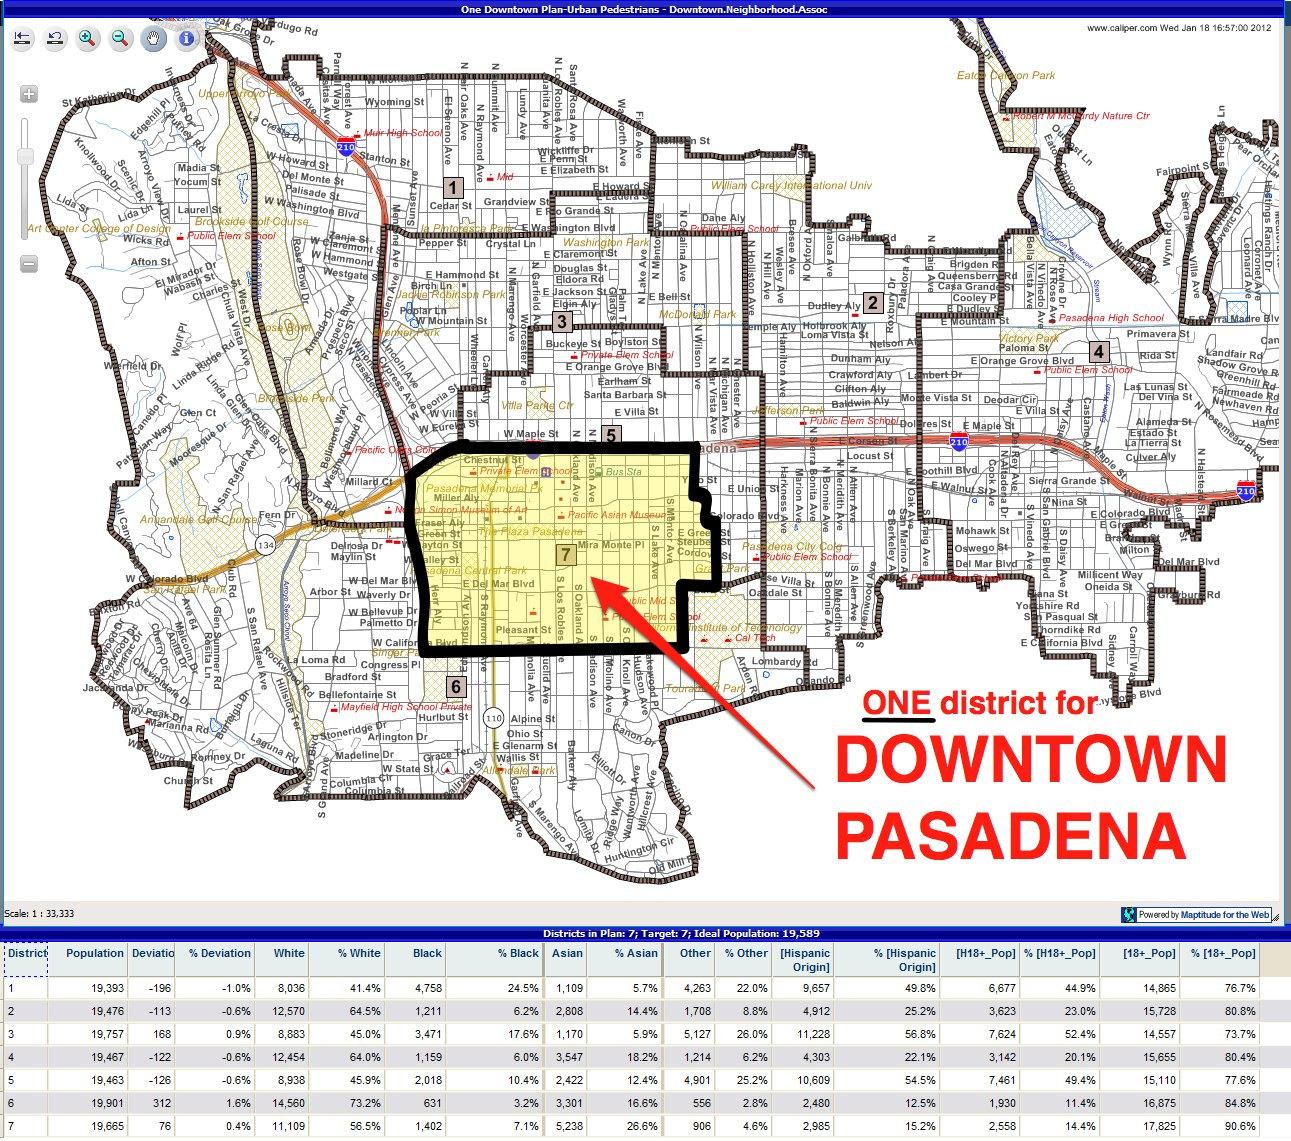 mapquest map of texas with One Council District For Downtown Pasadena on Banff Map in addition Tx Roundmountain in addition Denver Map further Hcl12 further Az Statemap.